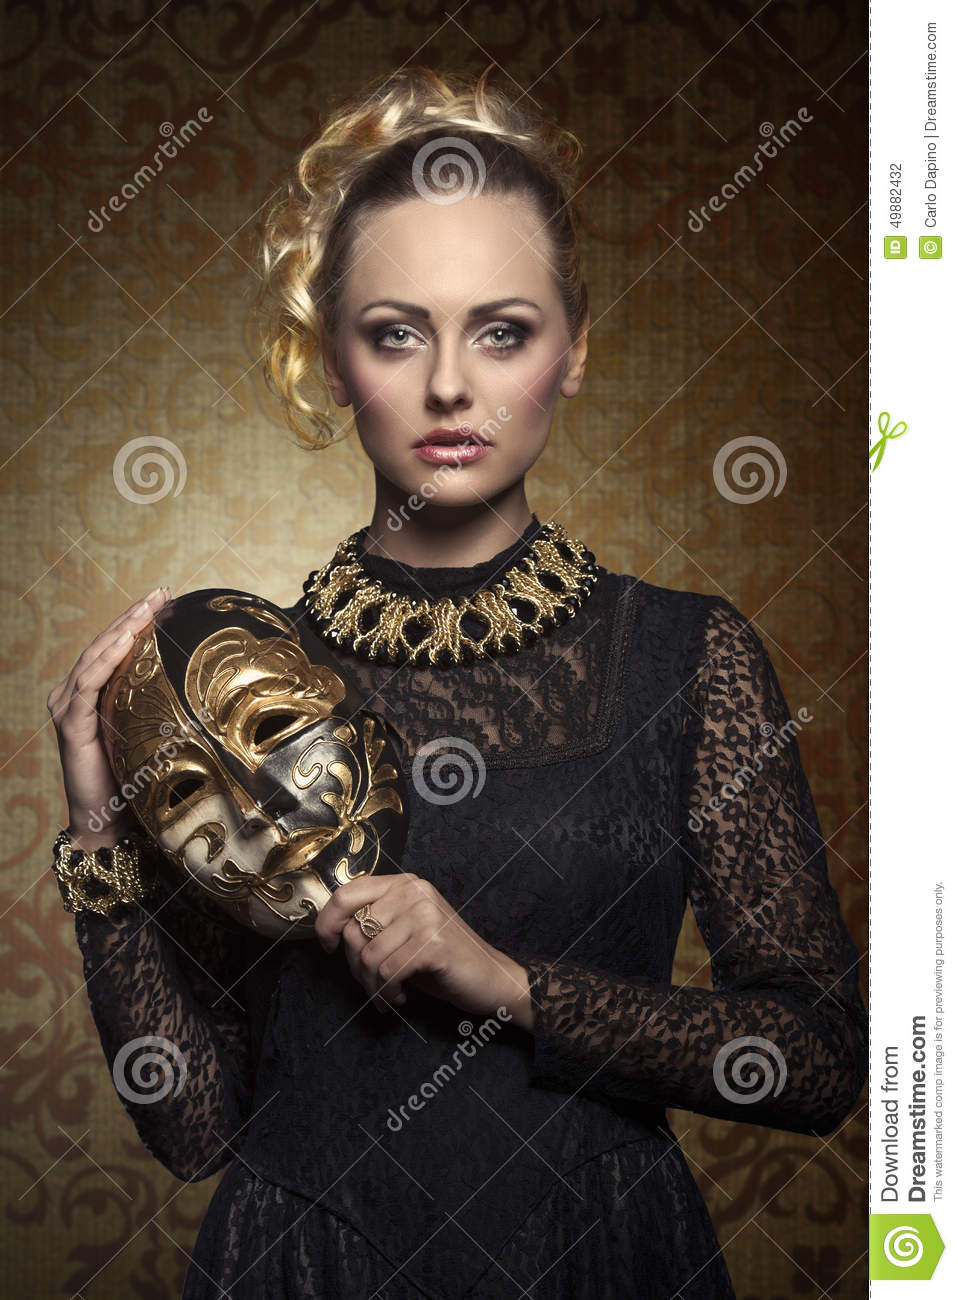 Girl With Aristocratic Lady Mask Stock Photo Image 49882432